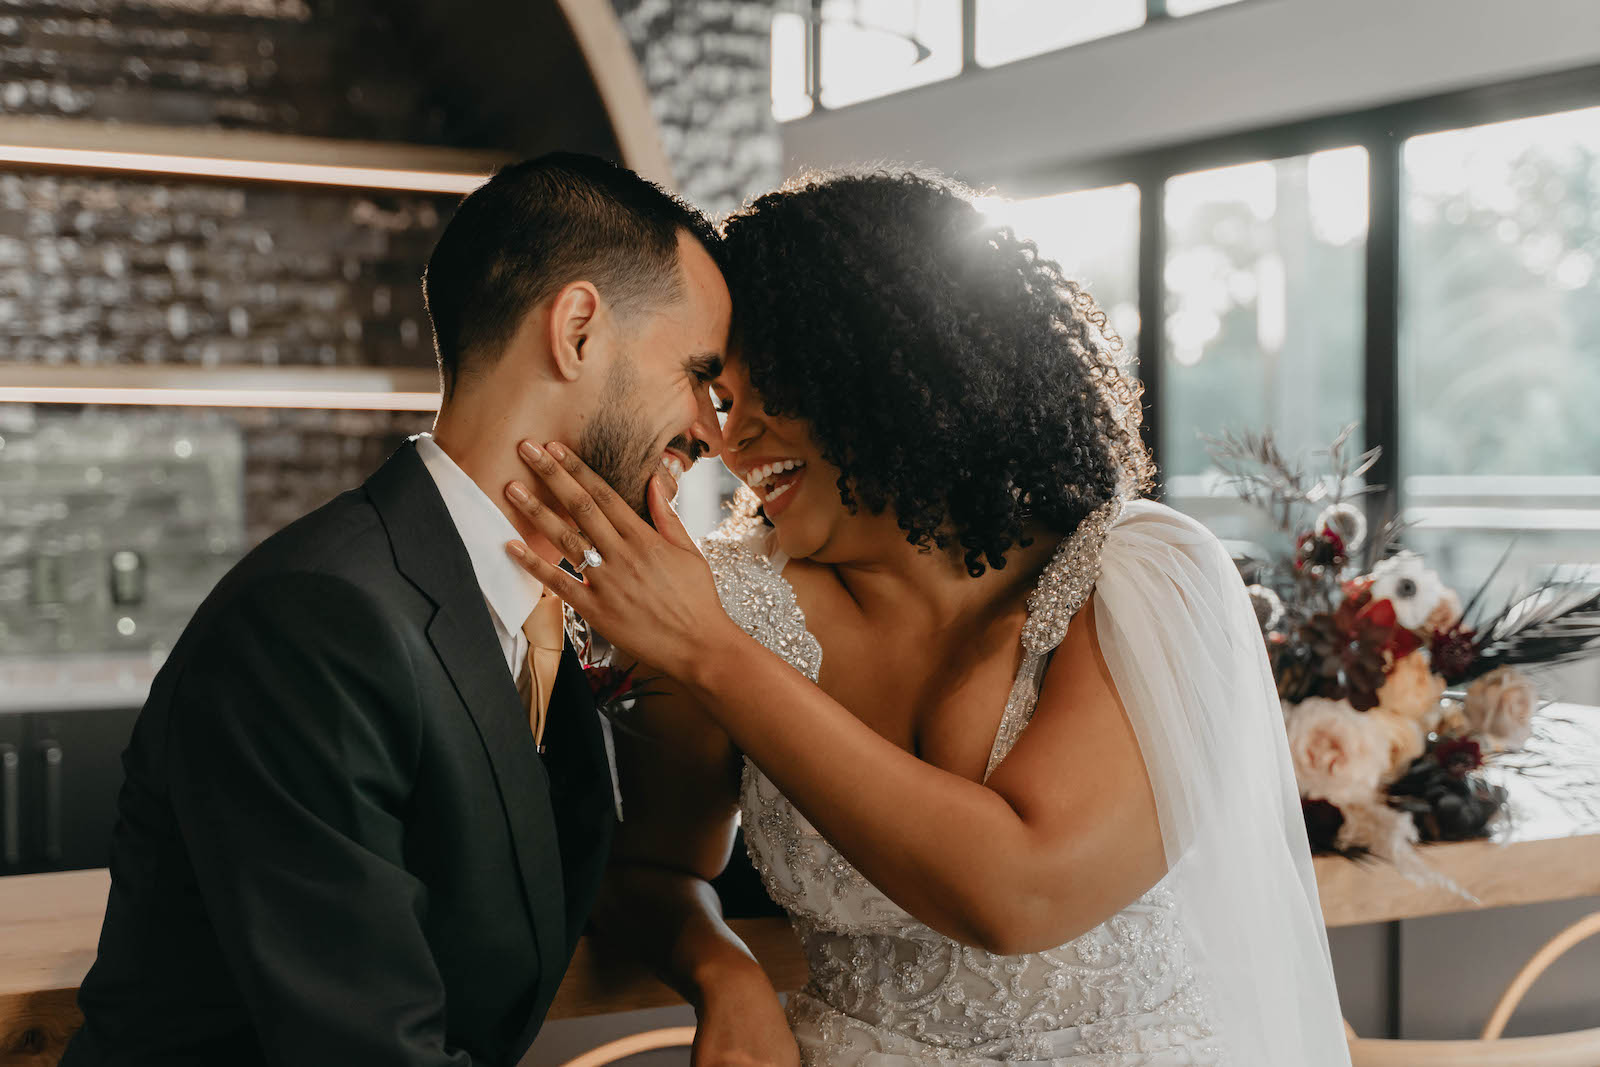 Indoor Bride and Groom Portrait in Tampa Wedding Venue Hyde House   Illusion Lace Embroidered Beaded V Neck Wedding Dress Bridal Gown with Sheer Tulle Cape Sleeves by Designer Amalia Carrara Bridal   Groom in Classic Black Tux Suit with Gold Tie